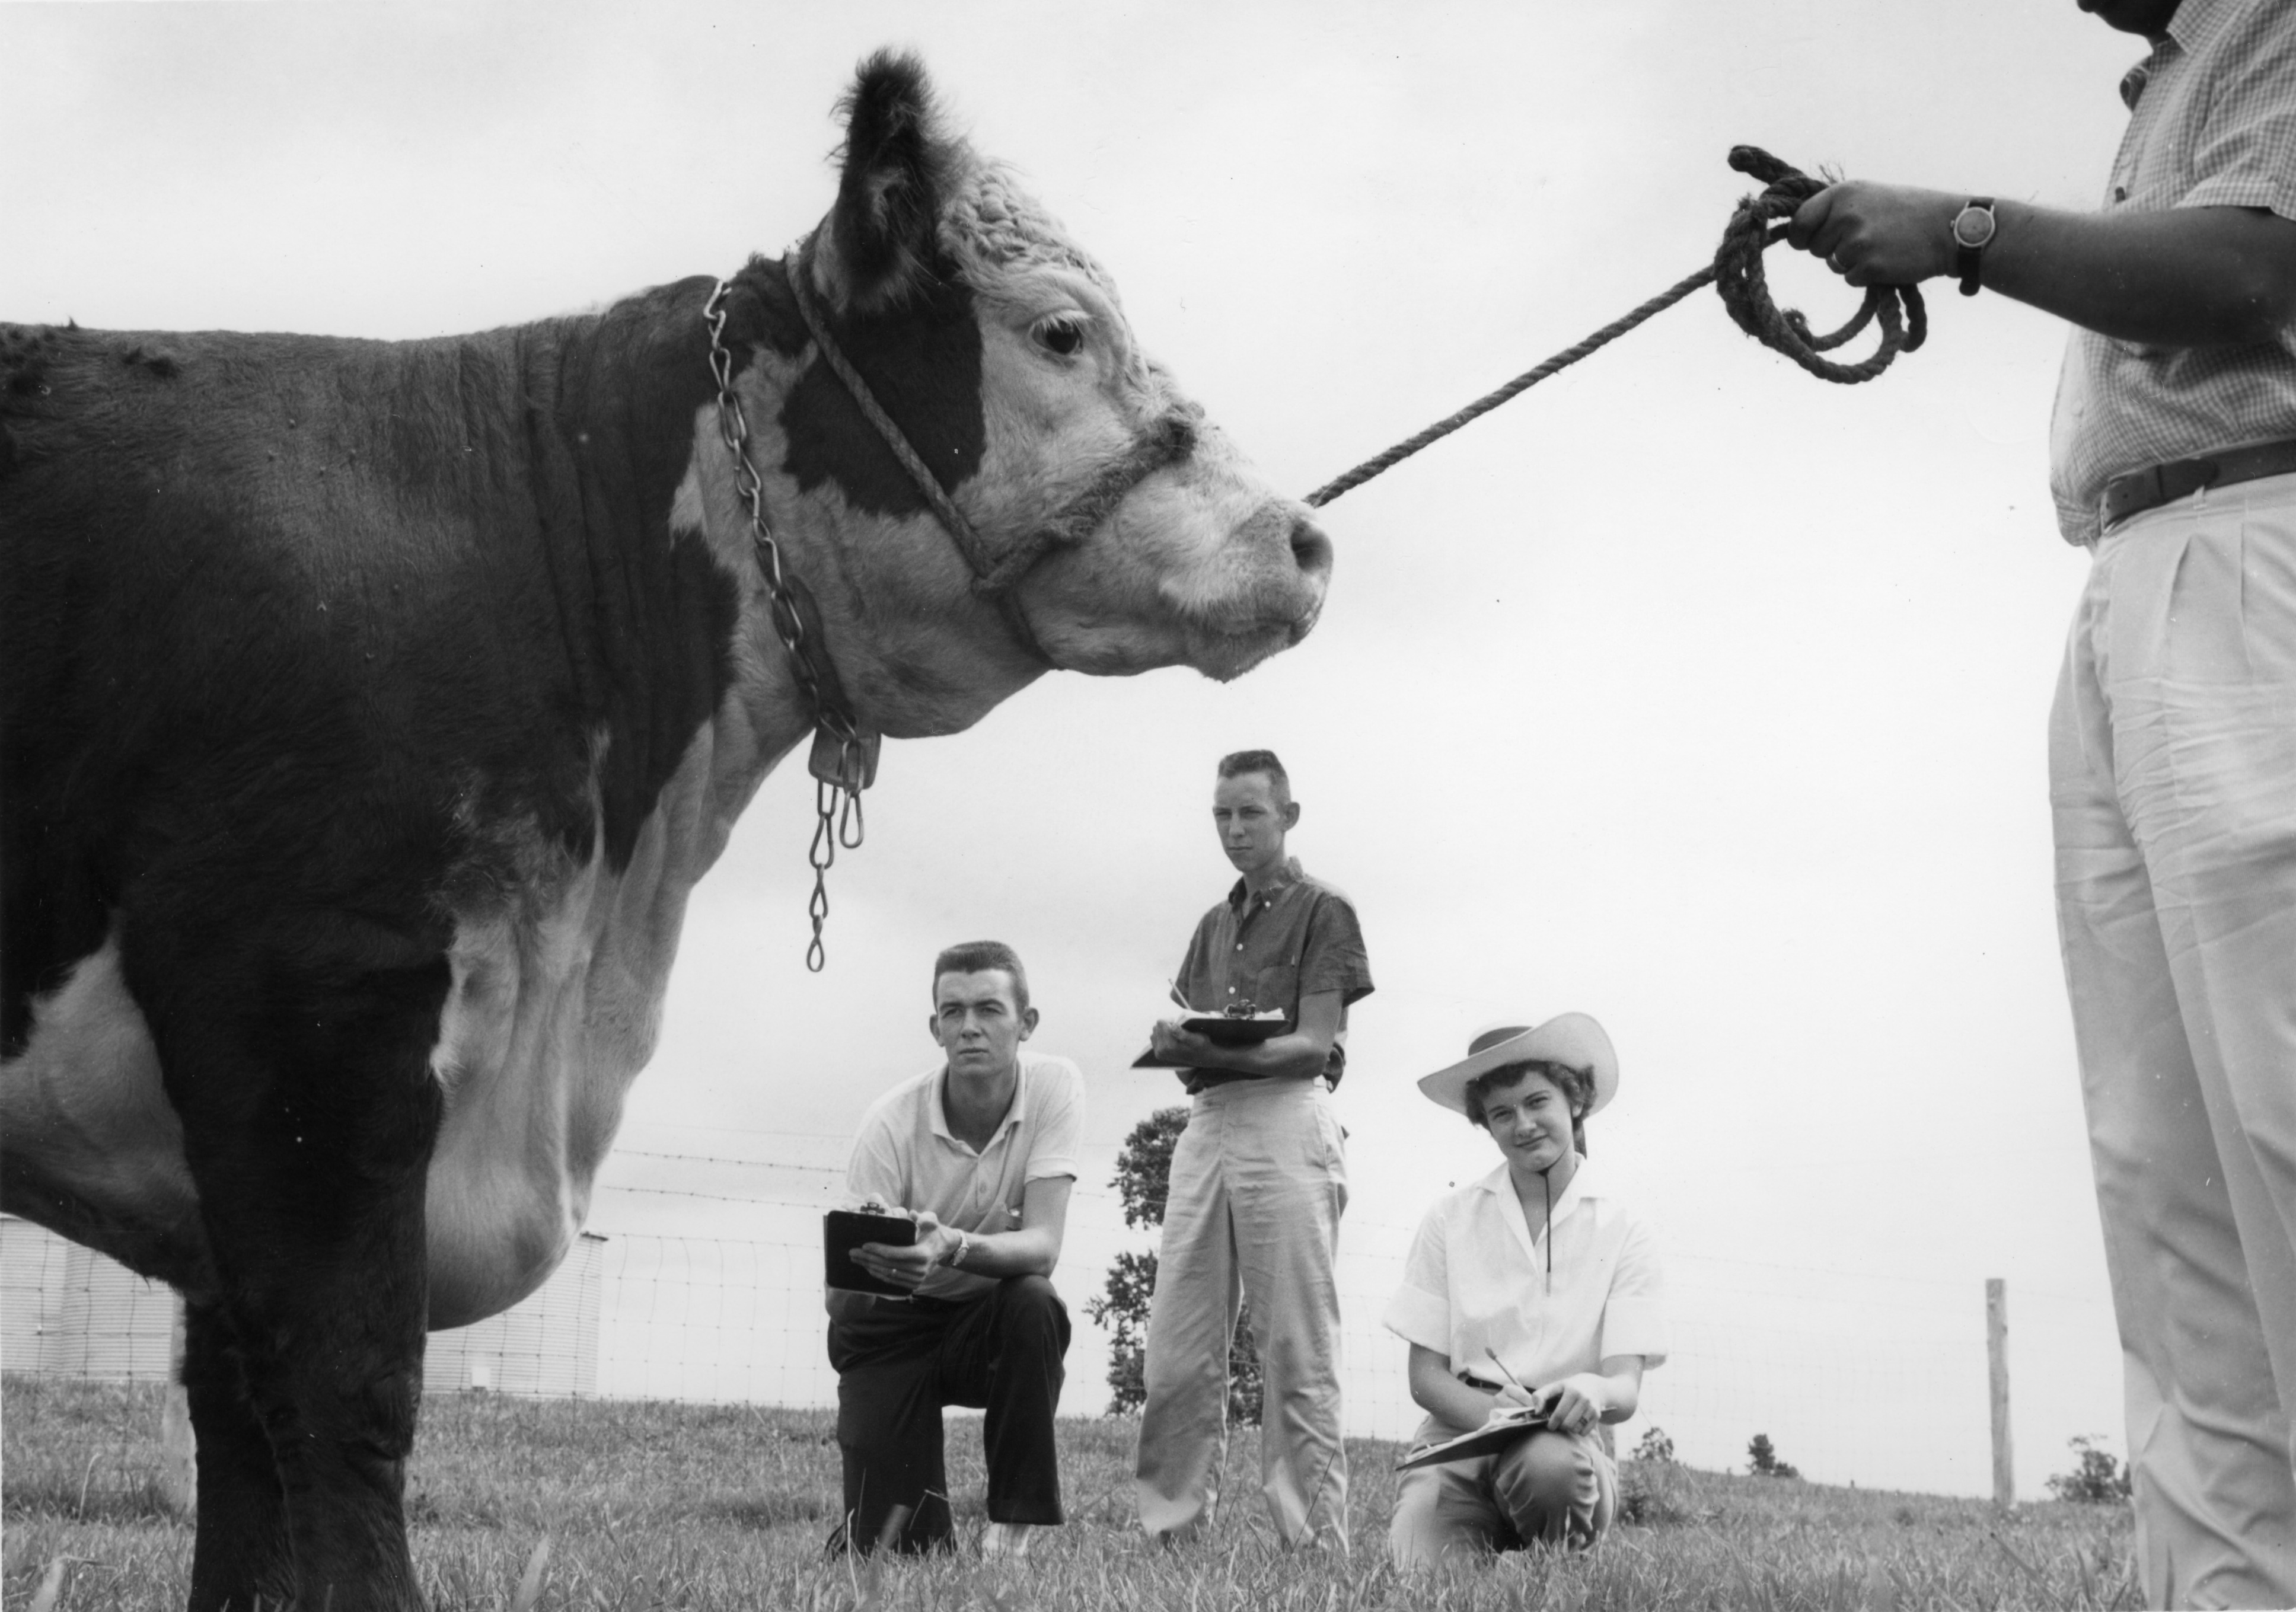 Three 4-H club members judging a calf held by a fourth unidentified person